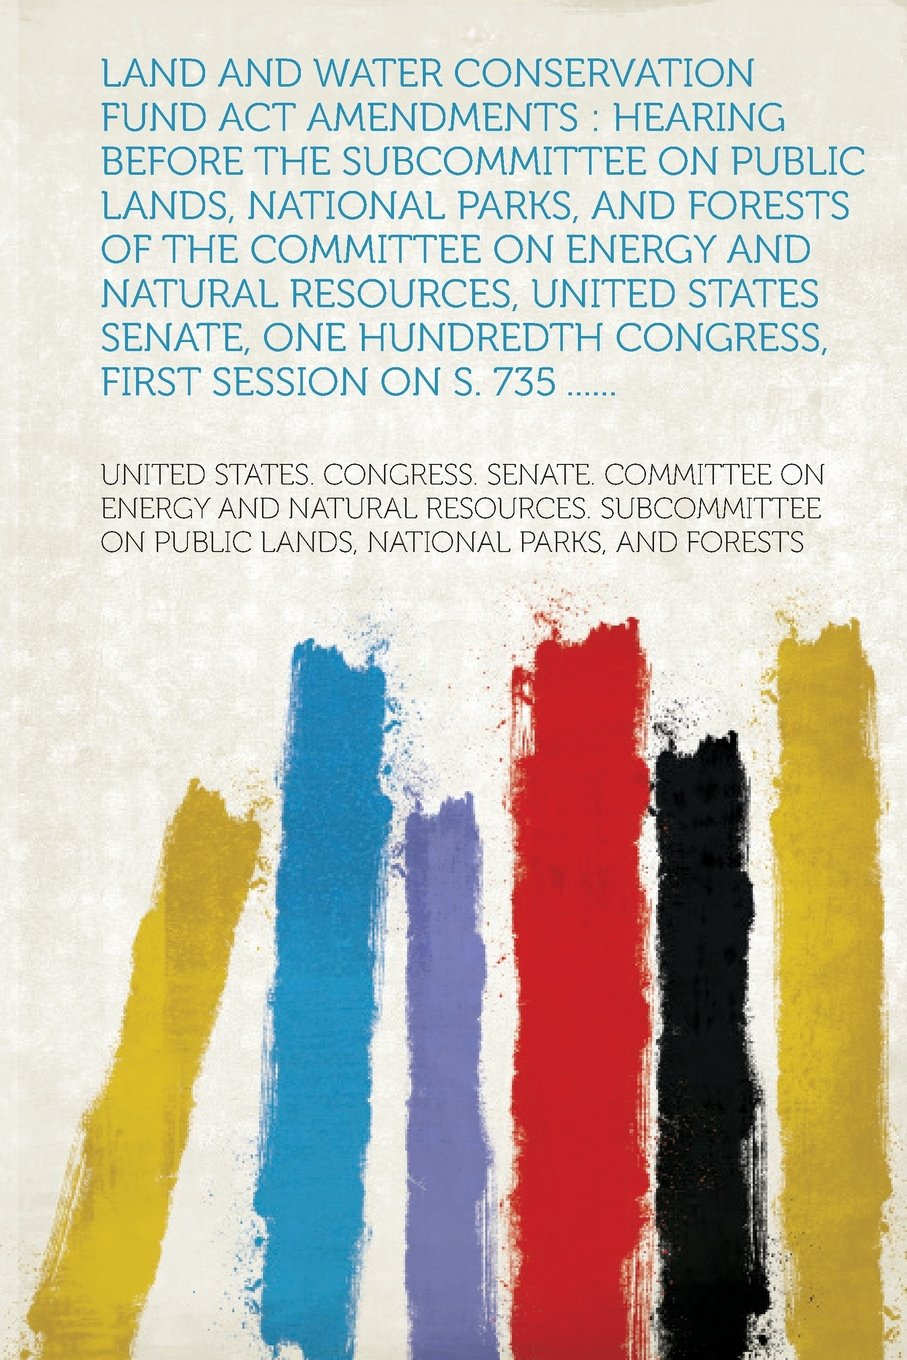 Download Land and Water Conservation Fund ACT Amendments: Hearing Before the Subcommittee on Public Lands, National Parks, and Forests of the Committee on Ener PDF